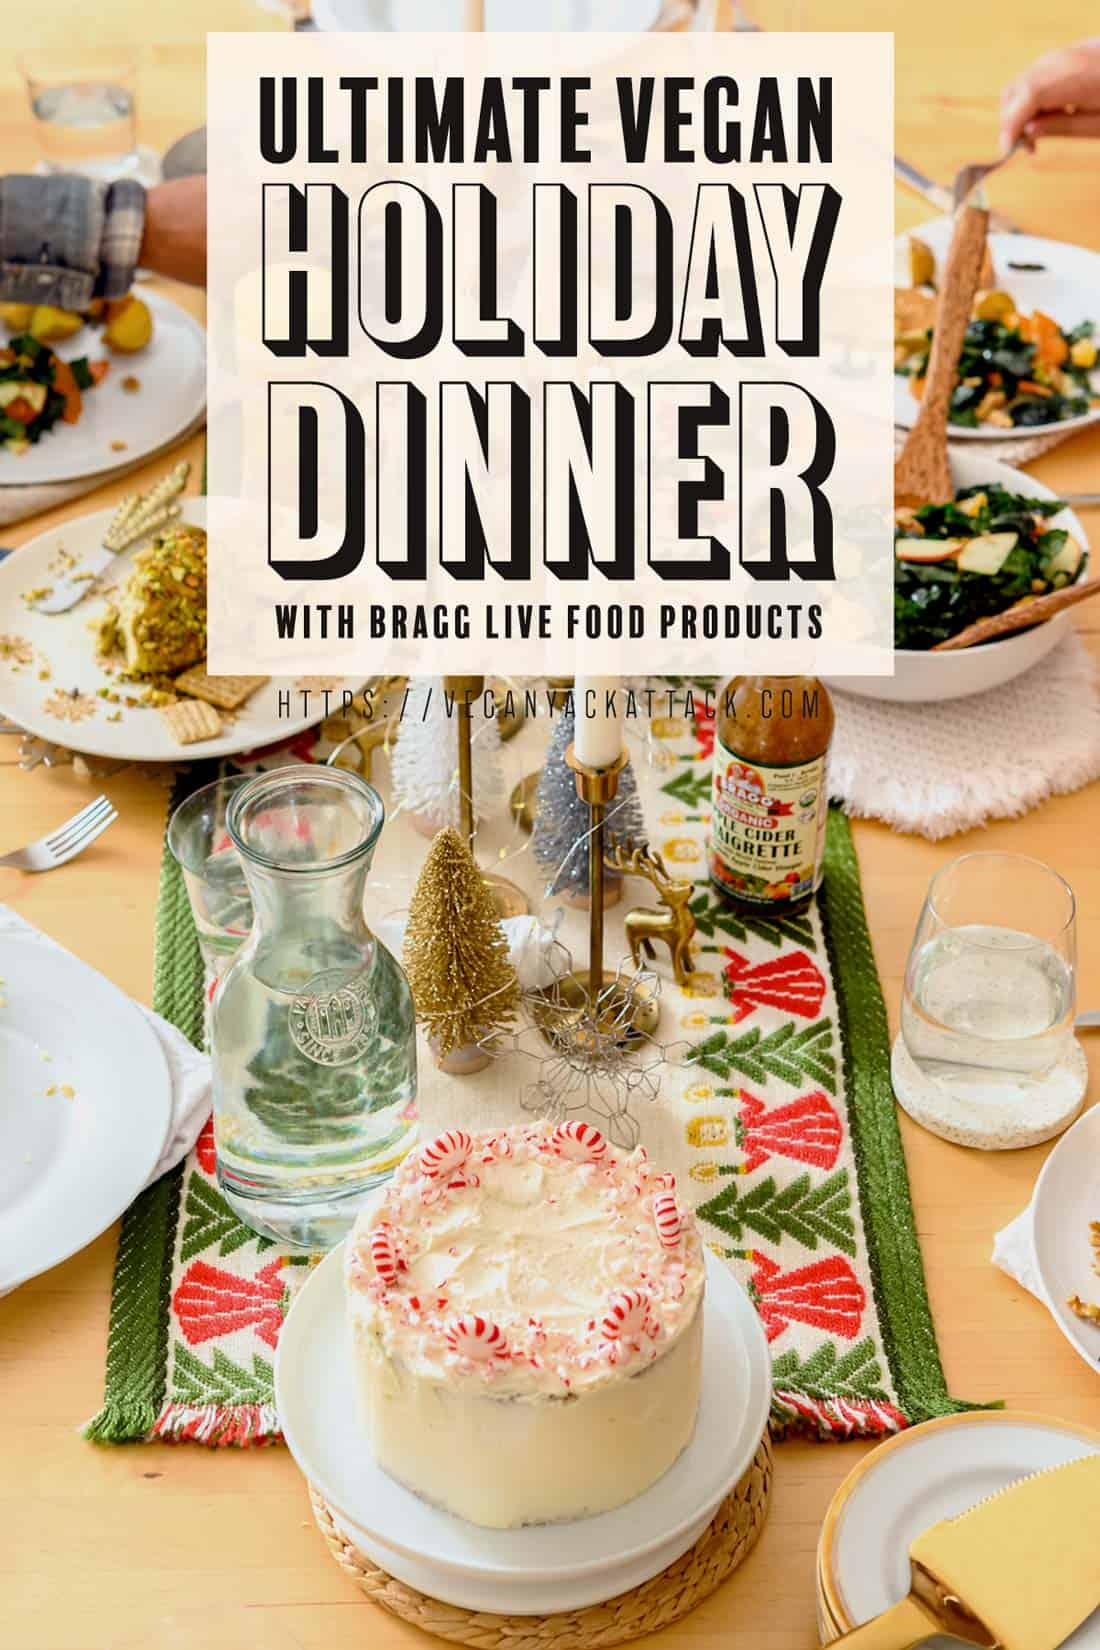 "Holiday dinner spread with table runner and dishes, text overlay reads ""Ultimate Vegan Holiday Dinner with Bragg Live Food Products"""